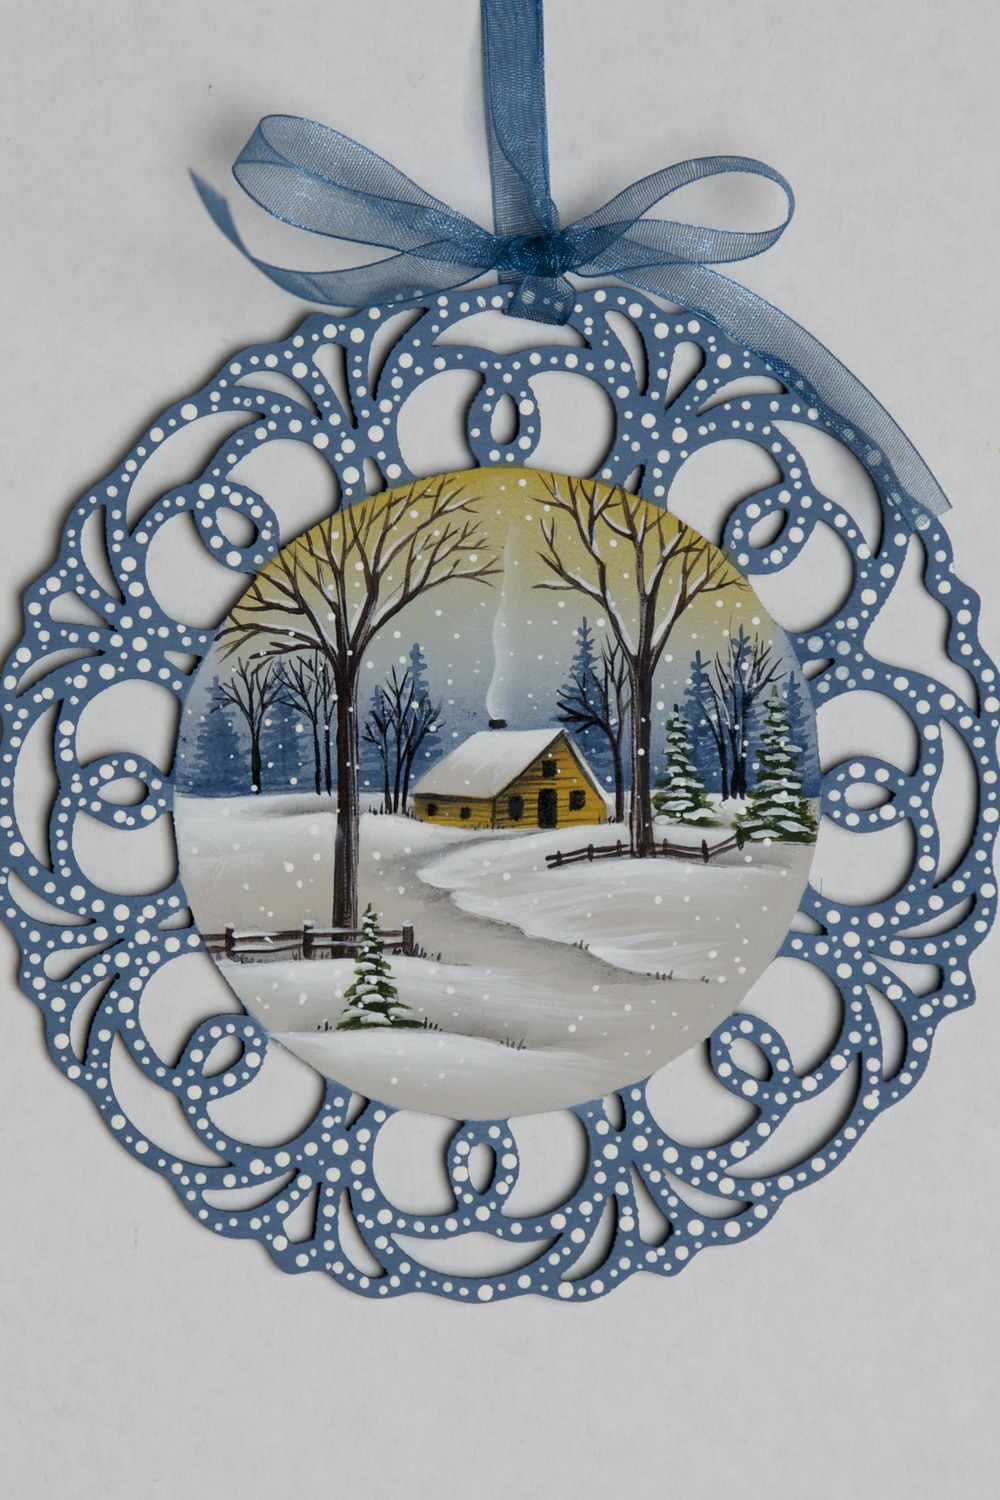 21. Snowy Winter Ornament.jpg